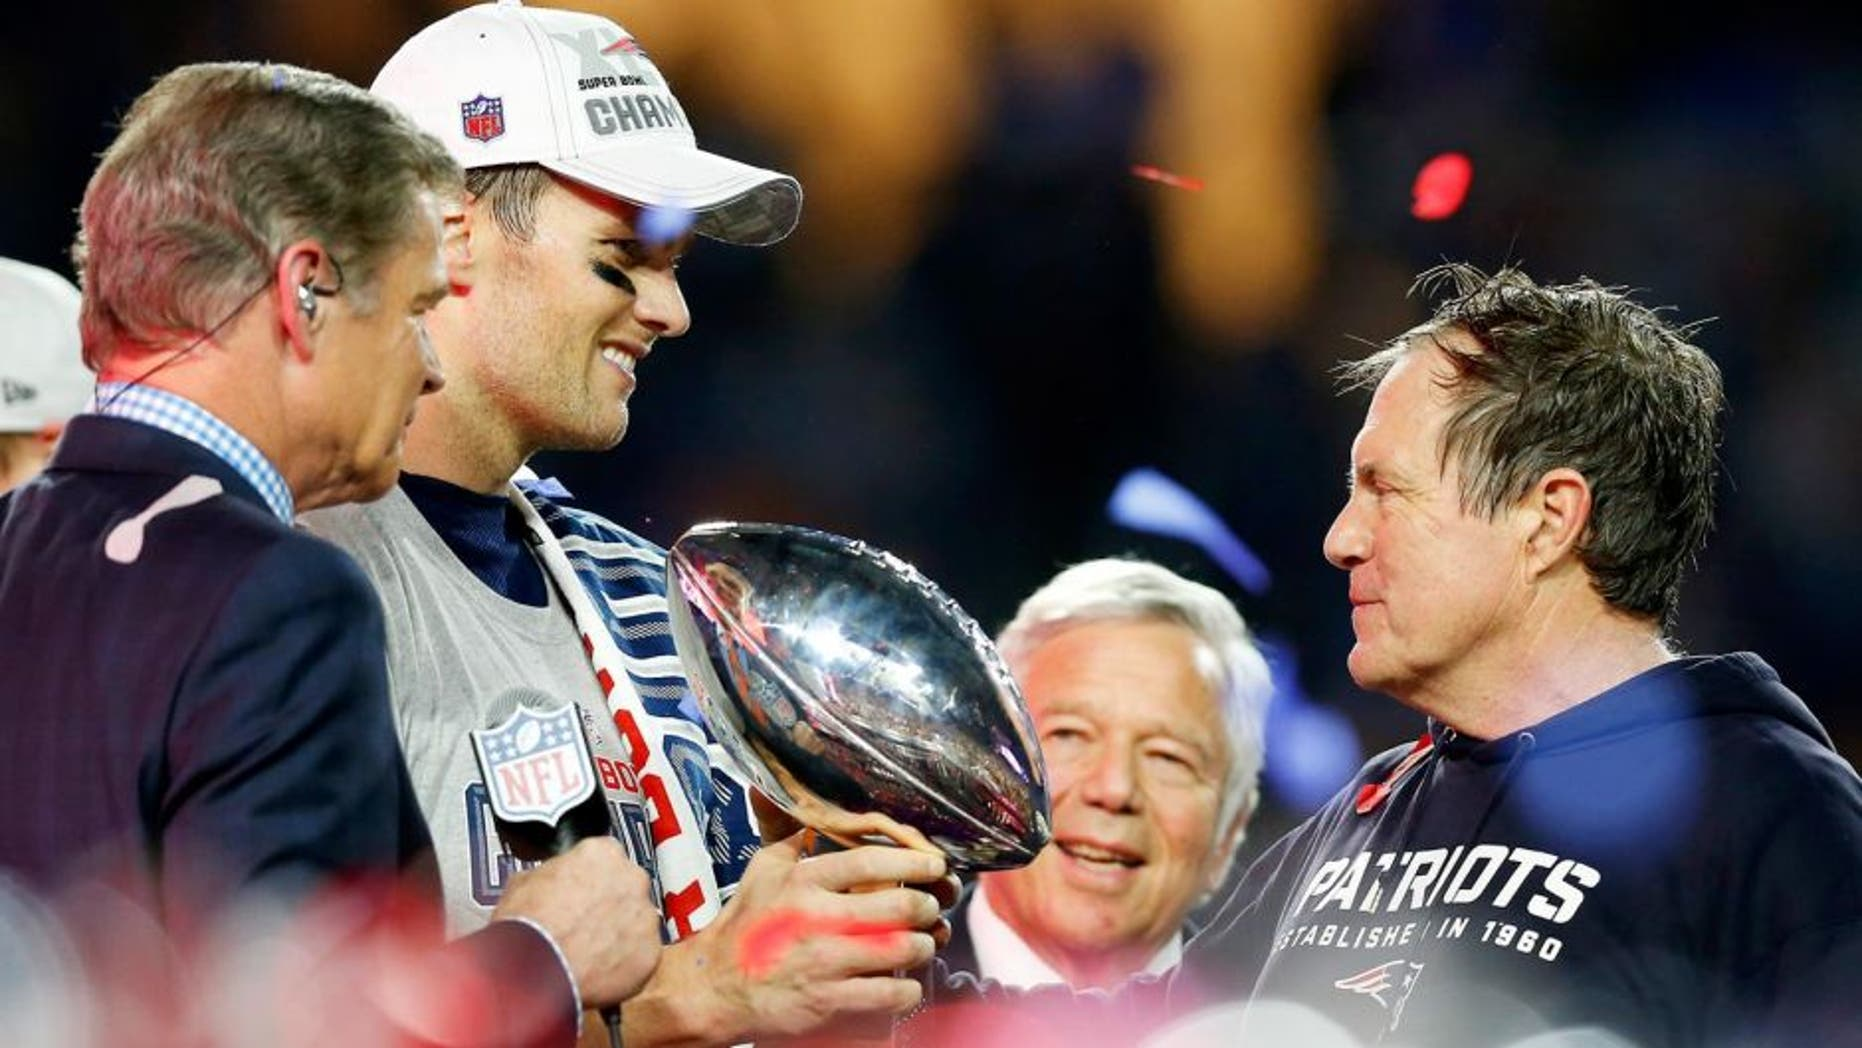 GLENDALE, AZ - FEBRUARY 01: Tom Brady #12, team owner Robert Kraft, and head coach Bill Belichick of the New England Patriots celebrate with the Vince Lombardi Trophy after defeating the Seattle Seahawks 28-24 to win Super Bowl XLIX at University of Phoenix Stadium on February 1, 2015 in Glendale, Arizona. (Photo by Tom Pennington/Getty Images)